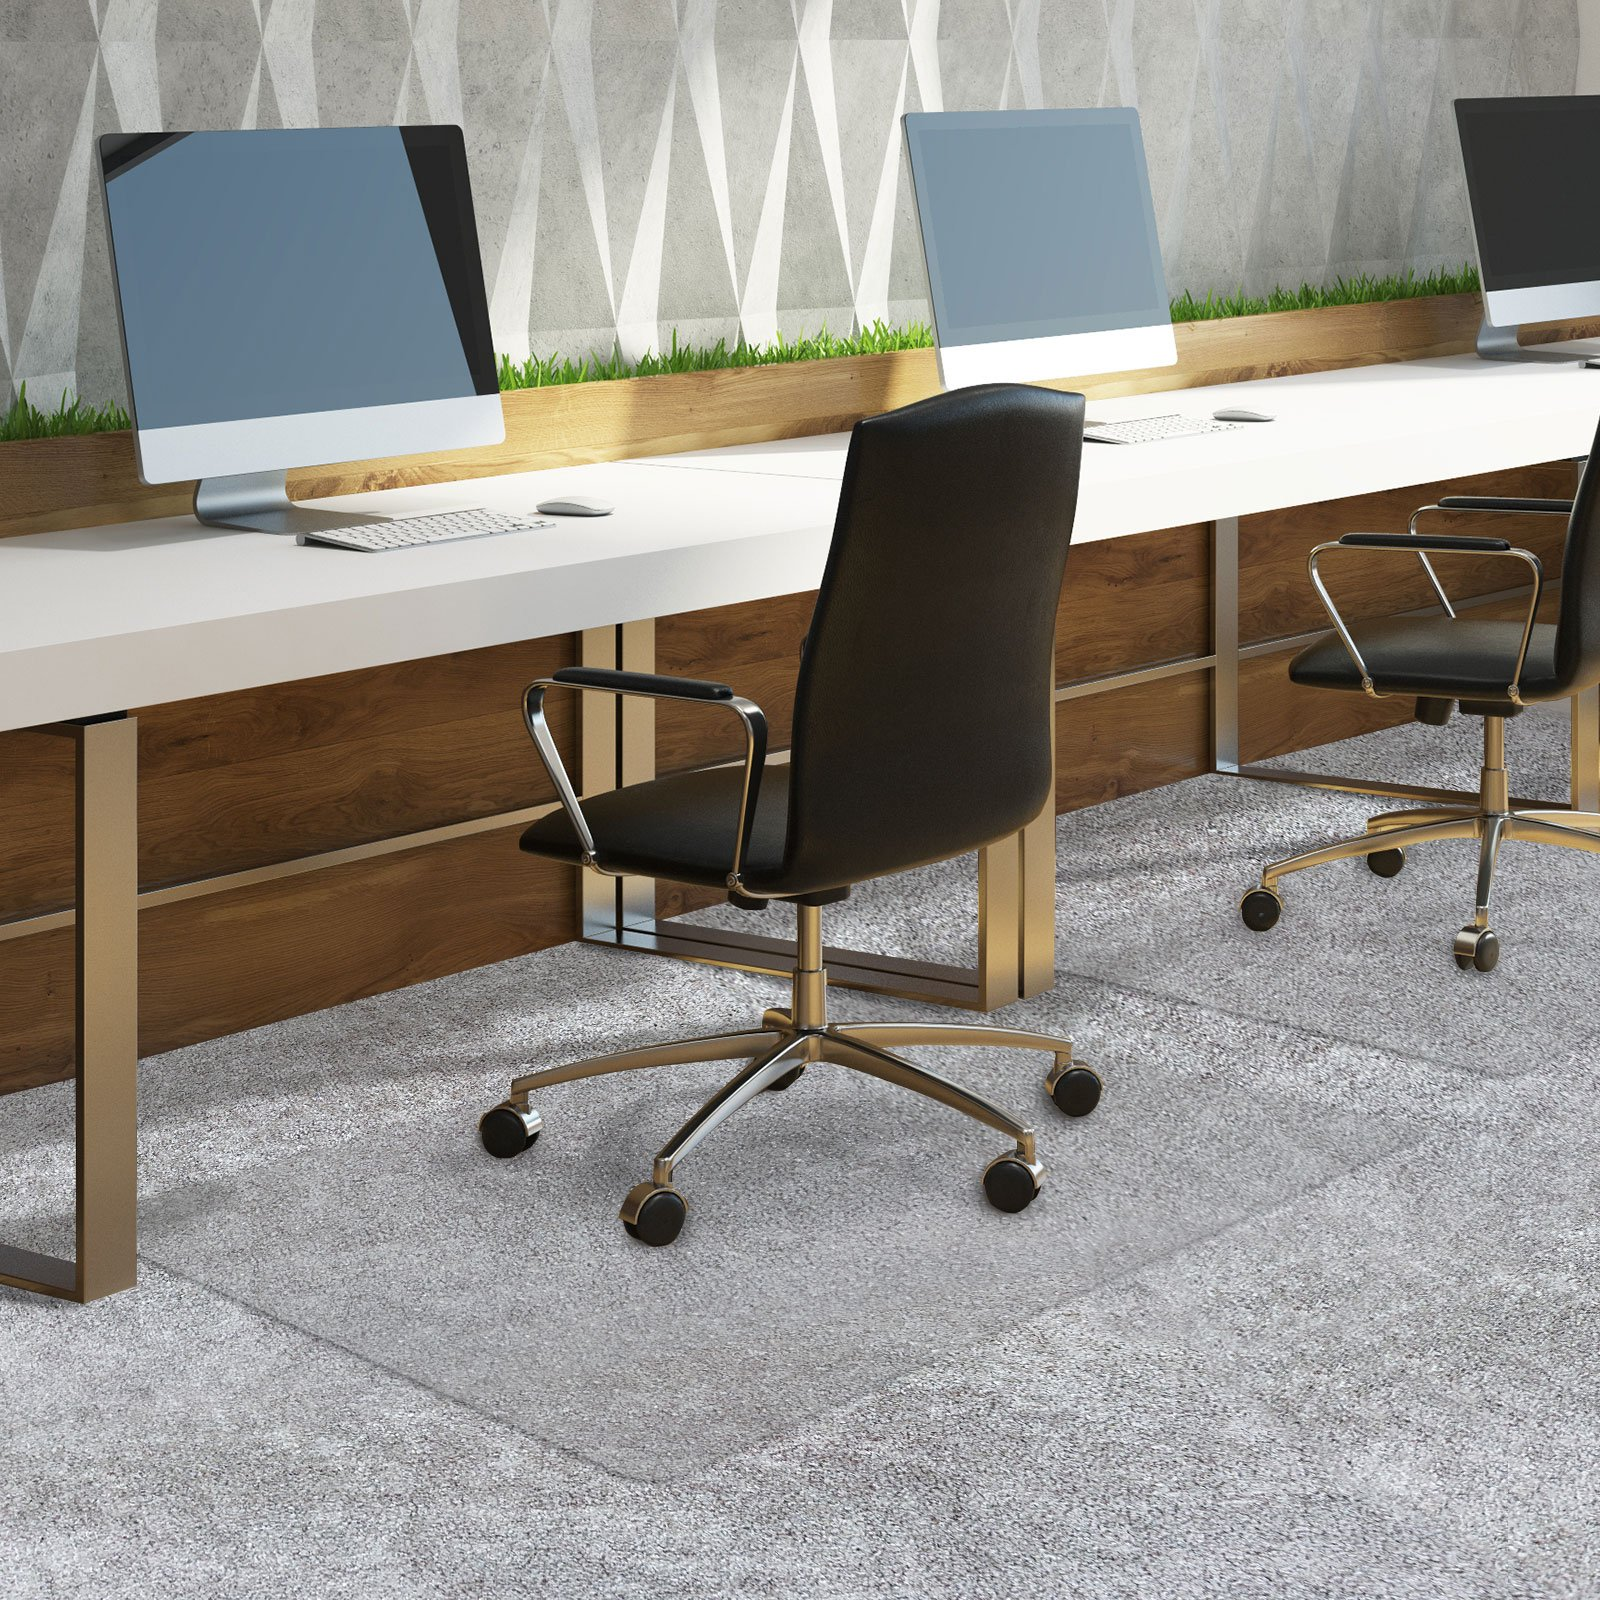 Office Chair Mat for Carpeted Floors | Desk Chair Mat for Carpet | Clear PVC Mat in Different Thicknesses and Sizes for Every Pile Type | Medium-Pile 36''x48'' by OfficeMarshal (Image #3)